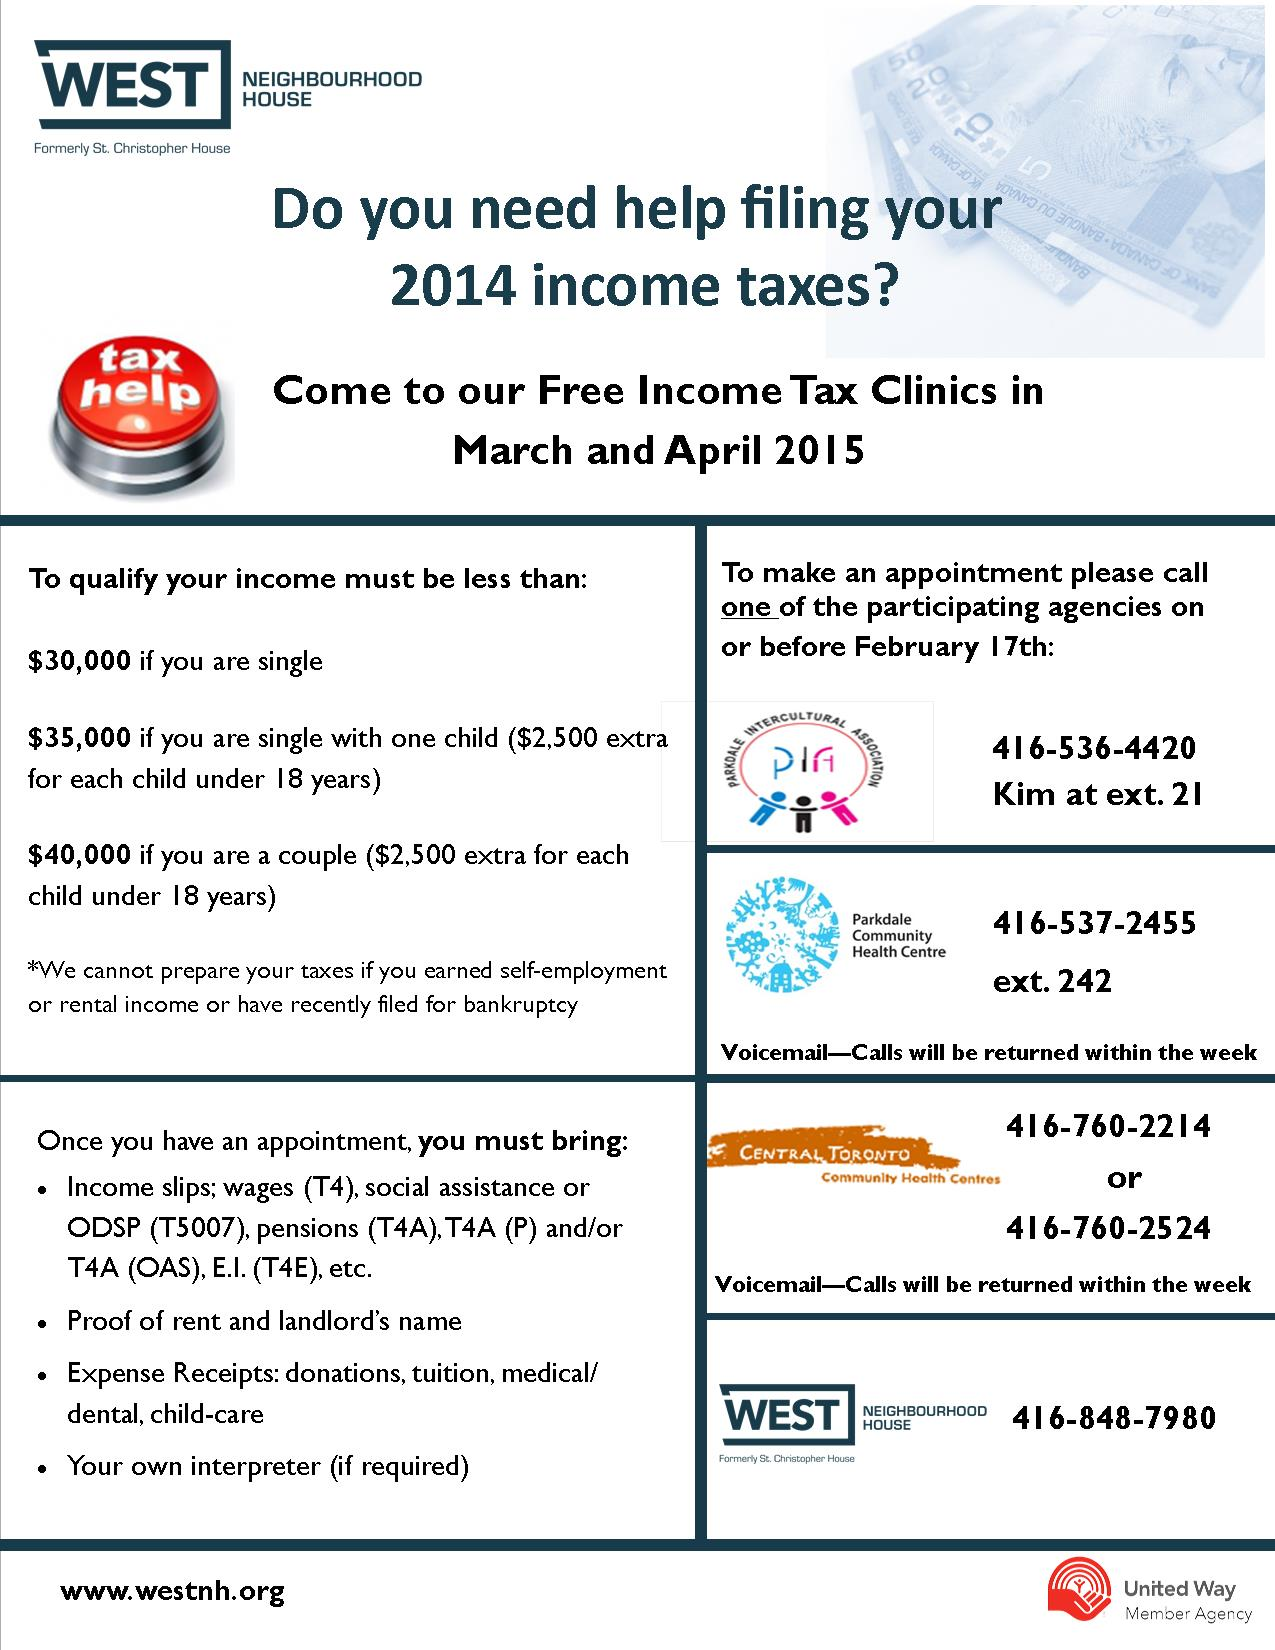 Do You Need Help Filing Your 2014 Income Taxes?  West